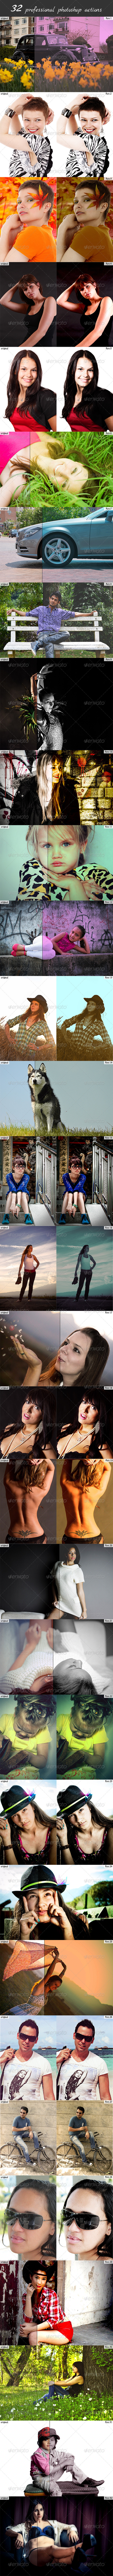 GraphicRiver Pure Photoshop actions 6125900